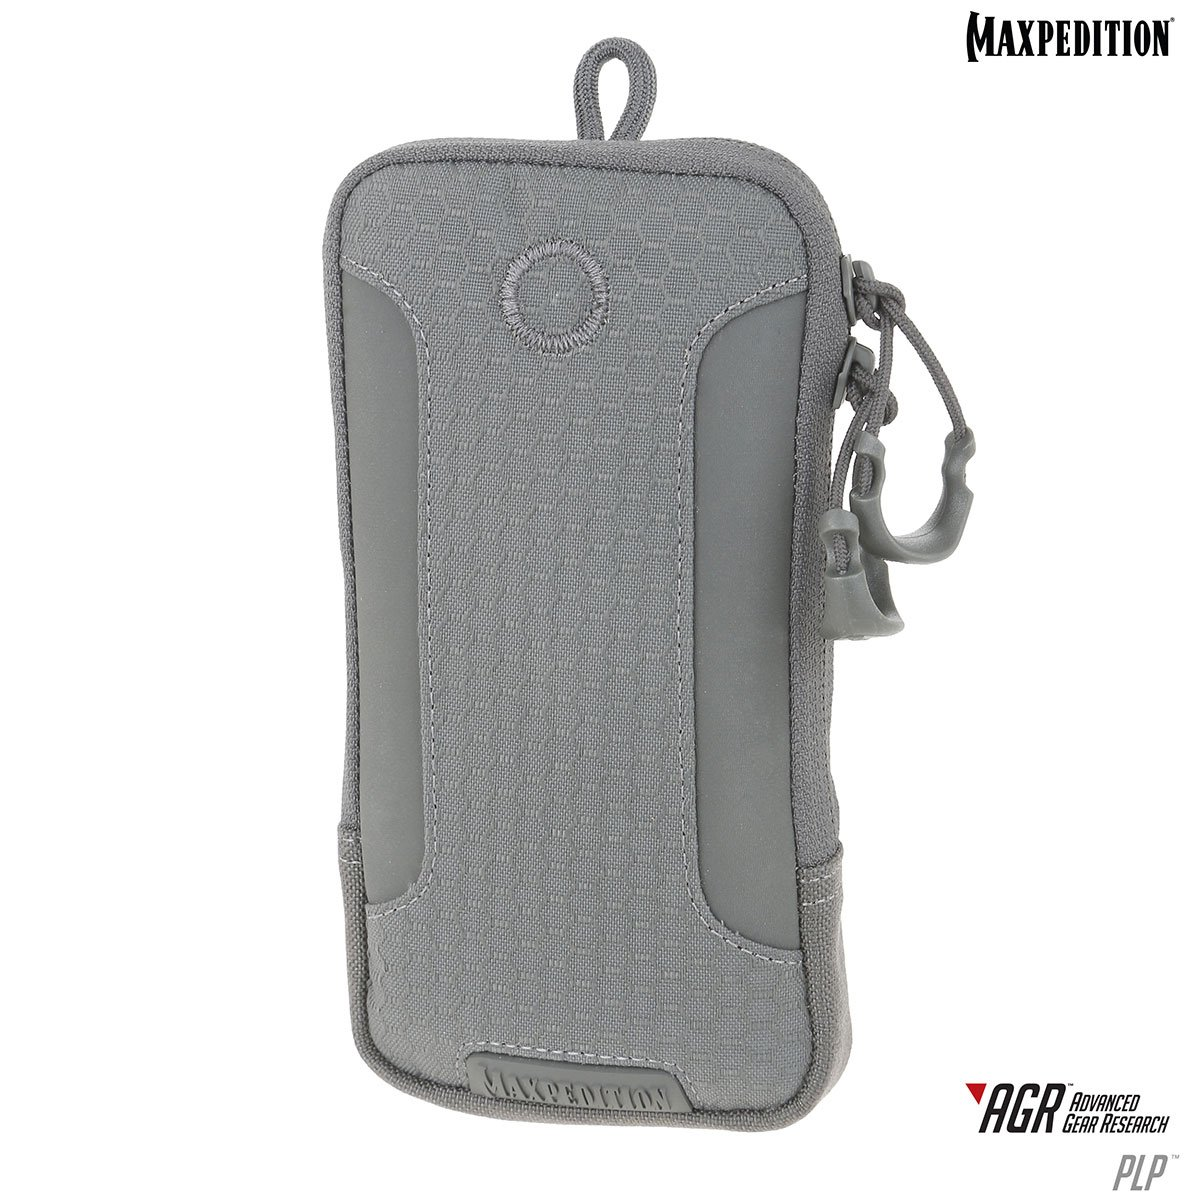 Maxpedition PLP iPhone 7 Plus Pouch – Gray